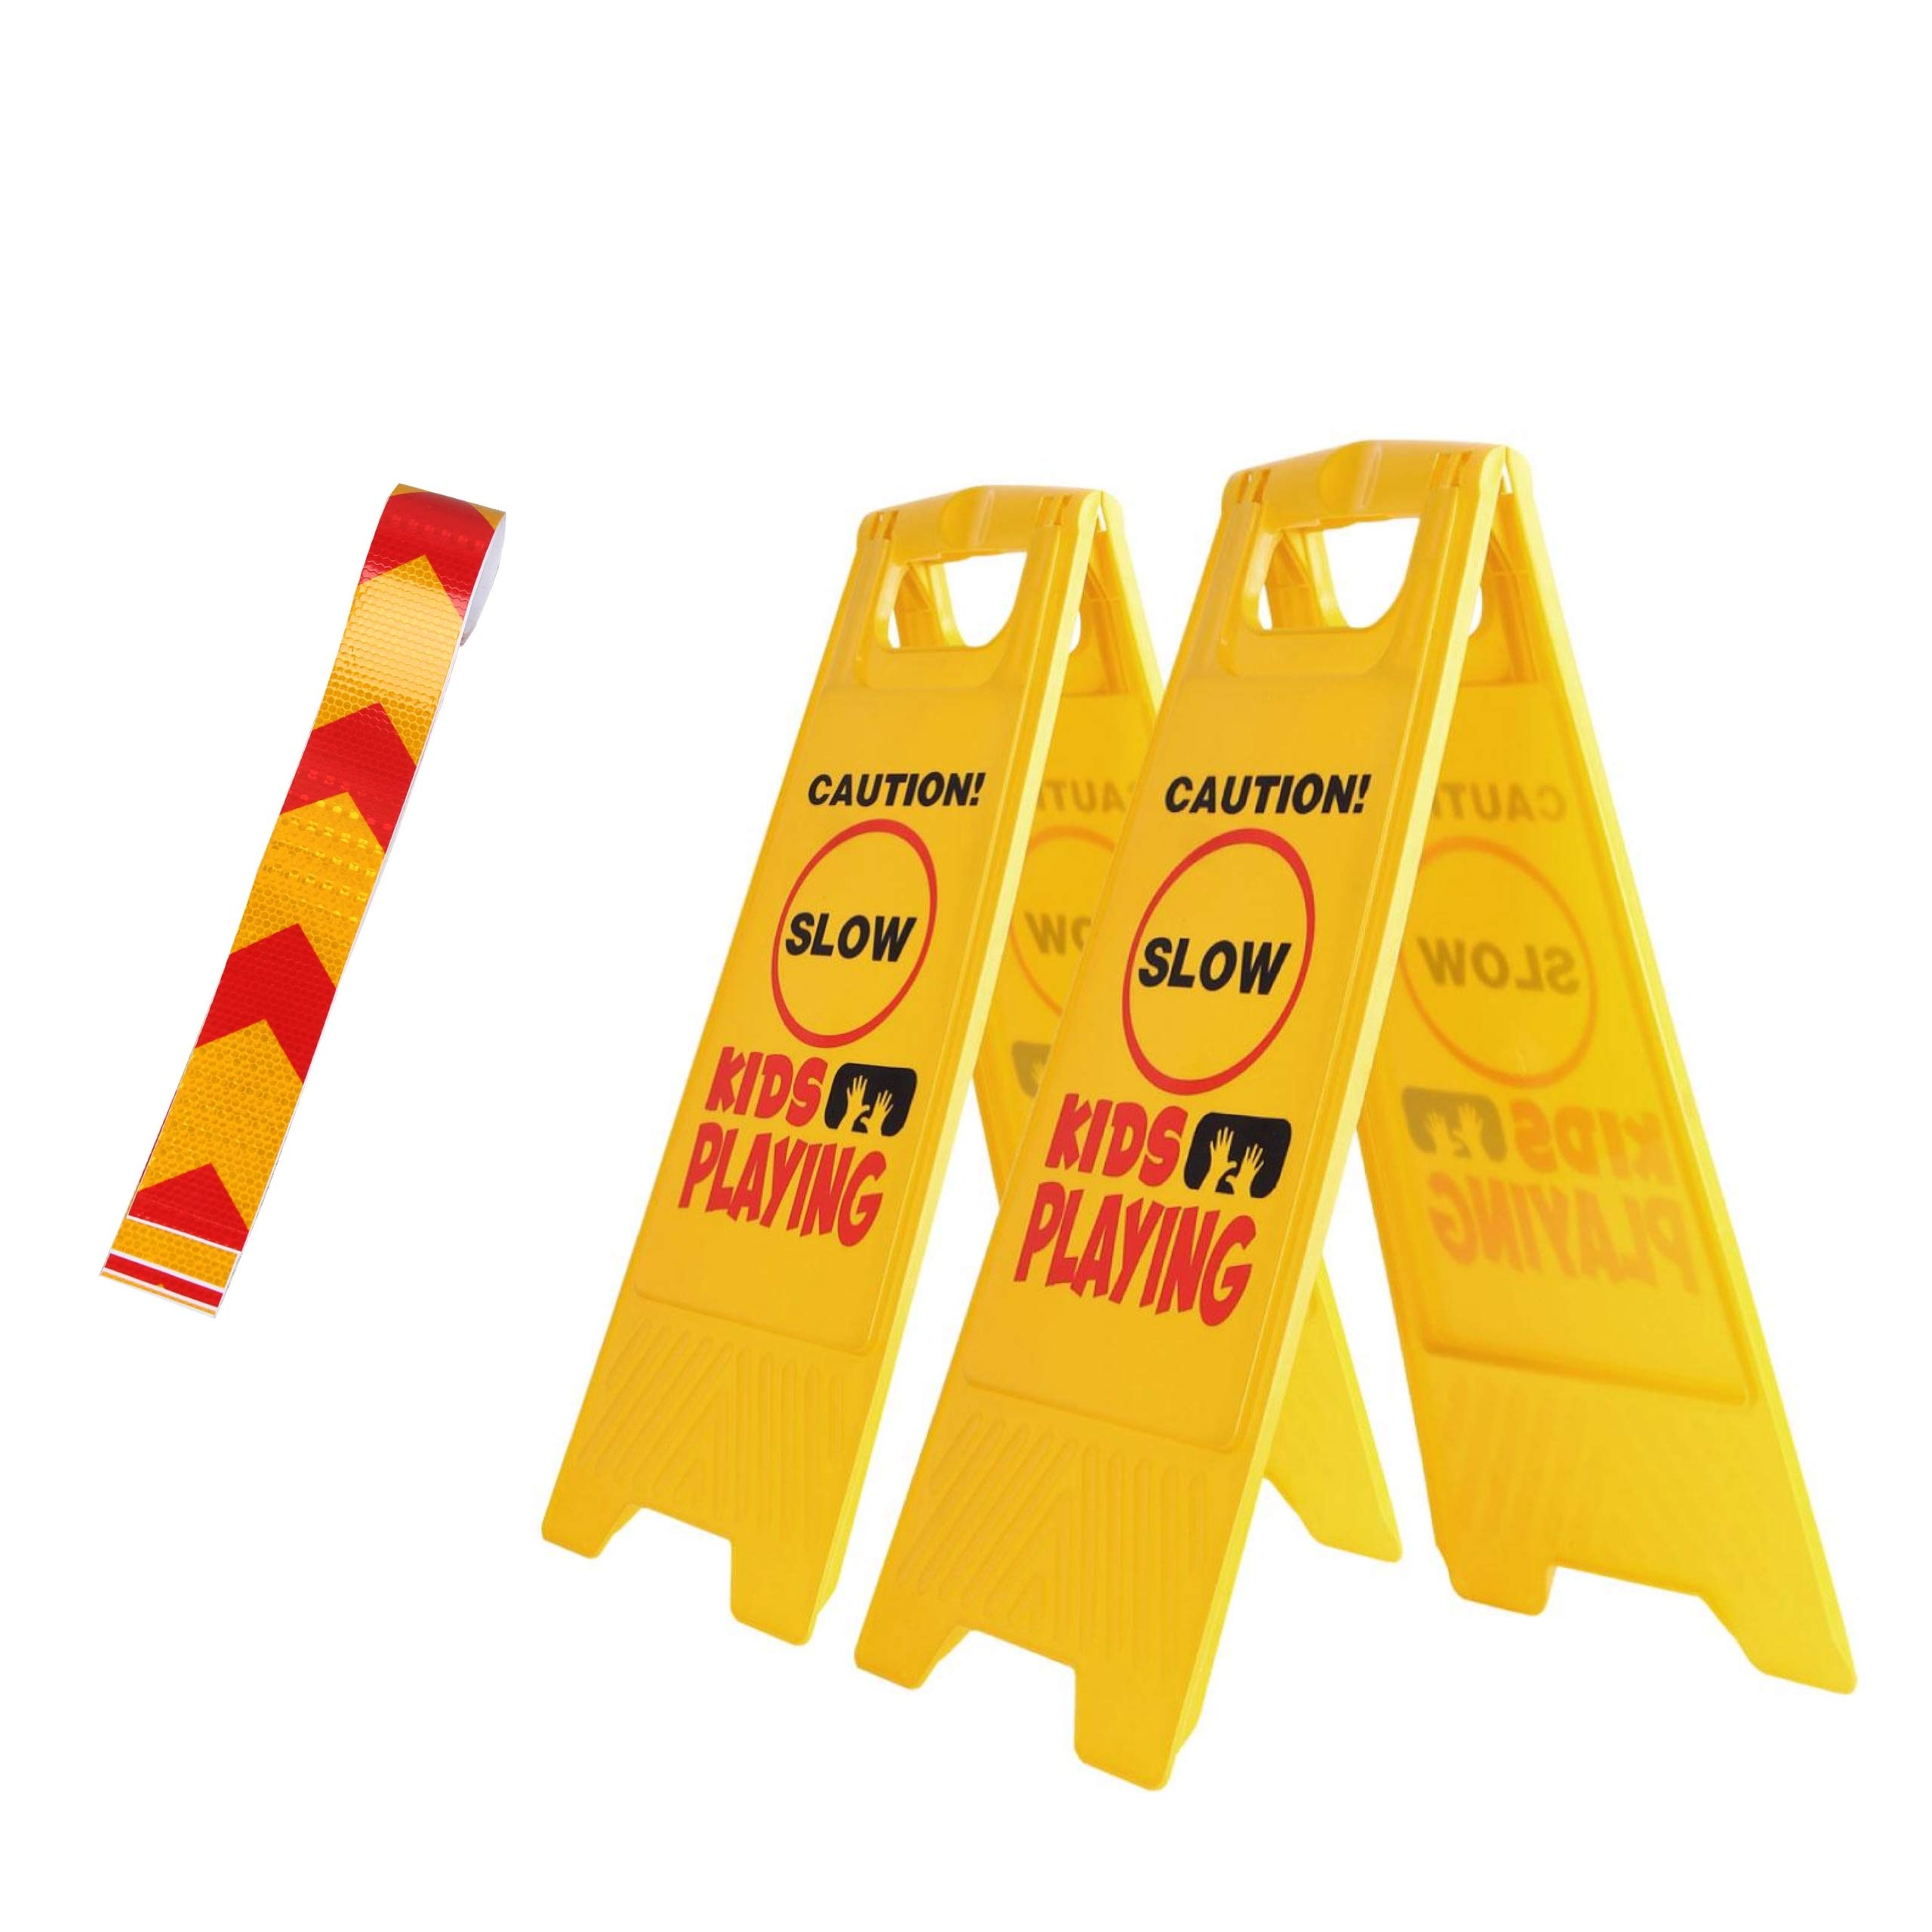 2 Pack Kid Playing Caution Sign - Children Safety Slow Road Yard Sign - Double Sided Sign Bundled with Reflective Tape